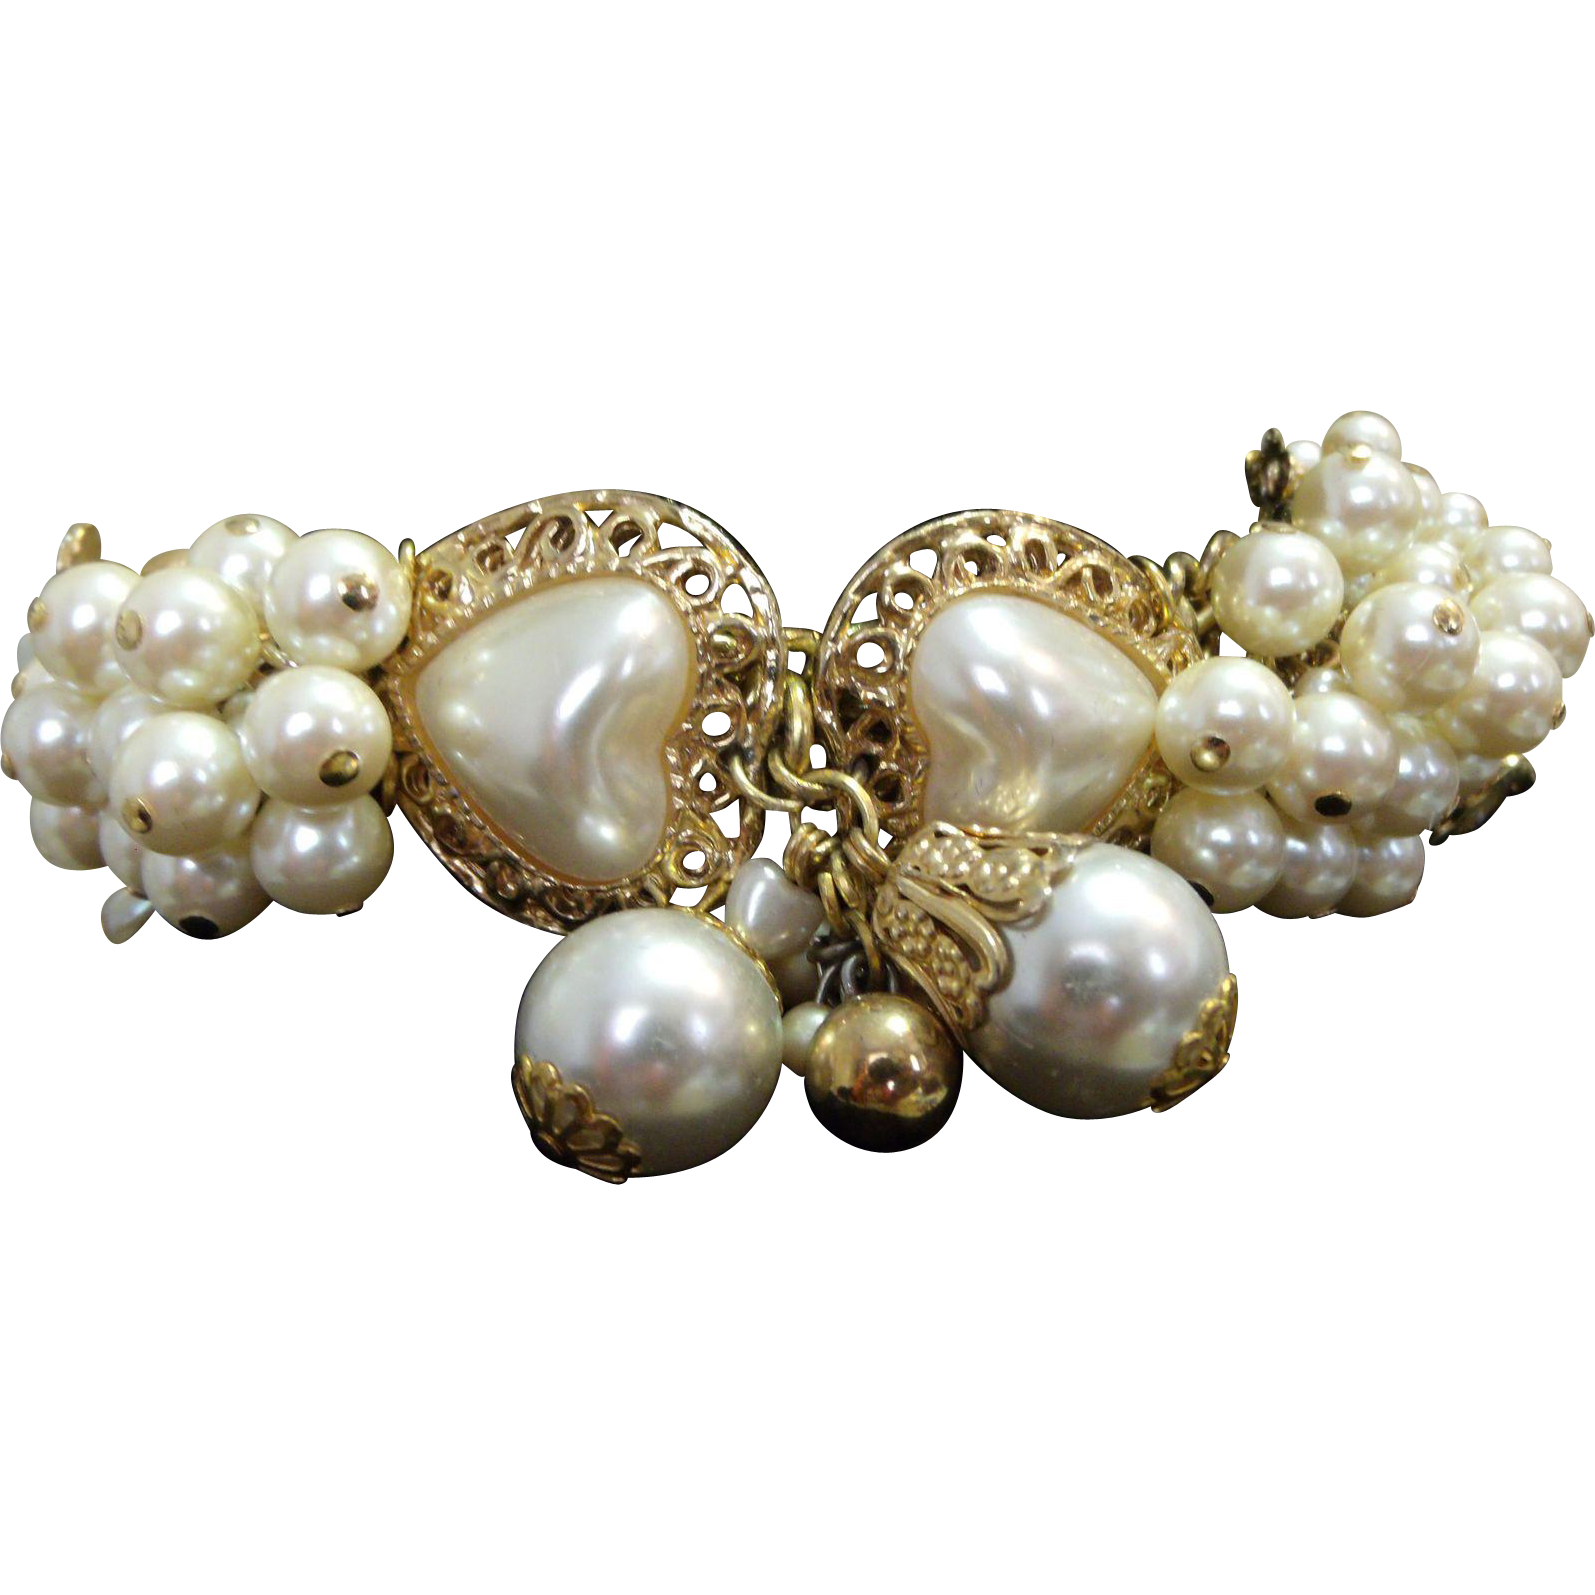 Charm-ing & Chunky Bracelet Gold (tone) & Pearls (Faux) Assemblage